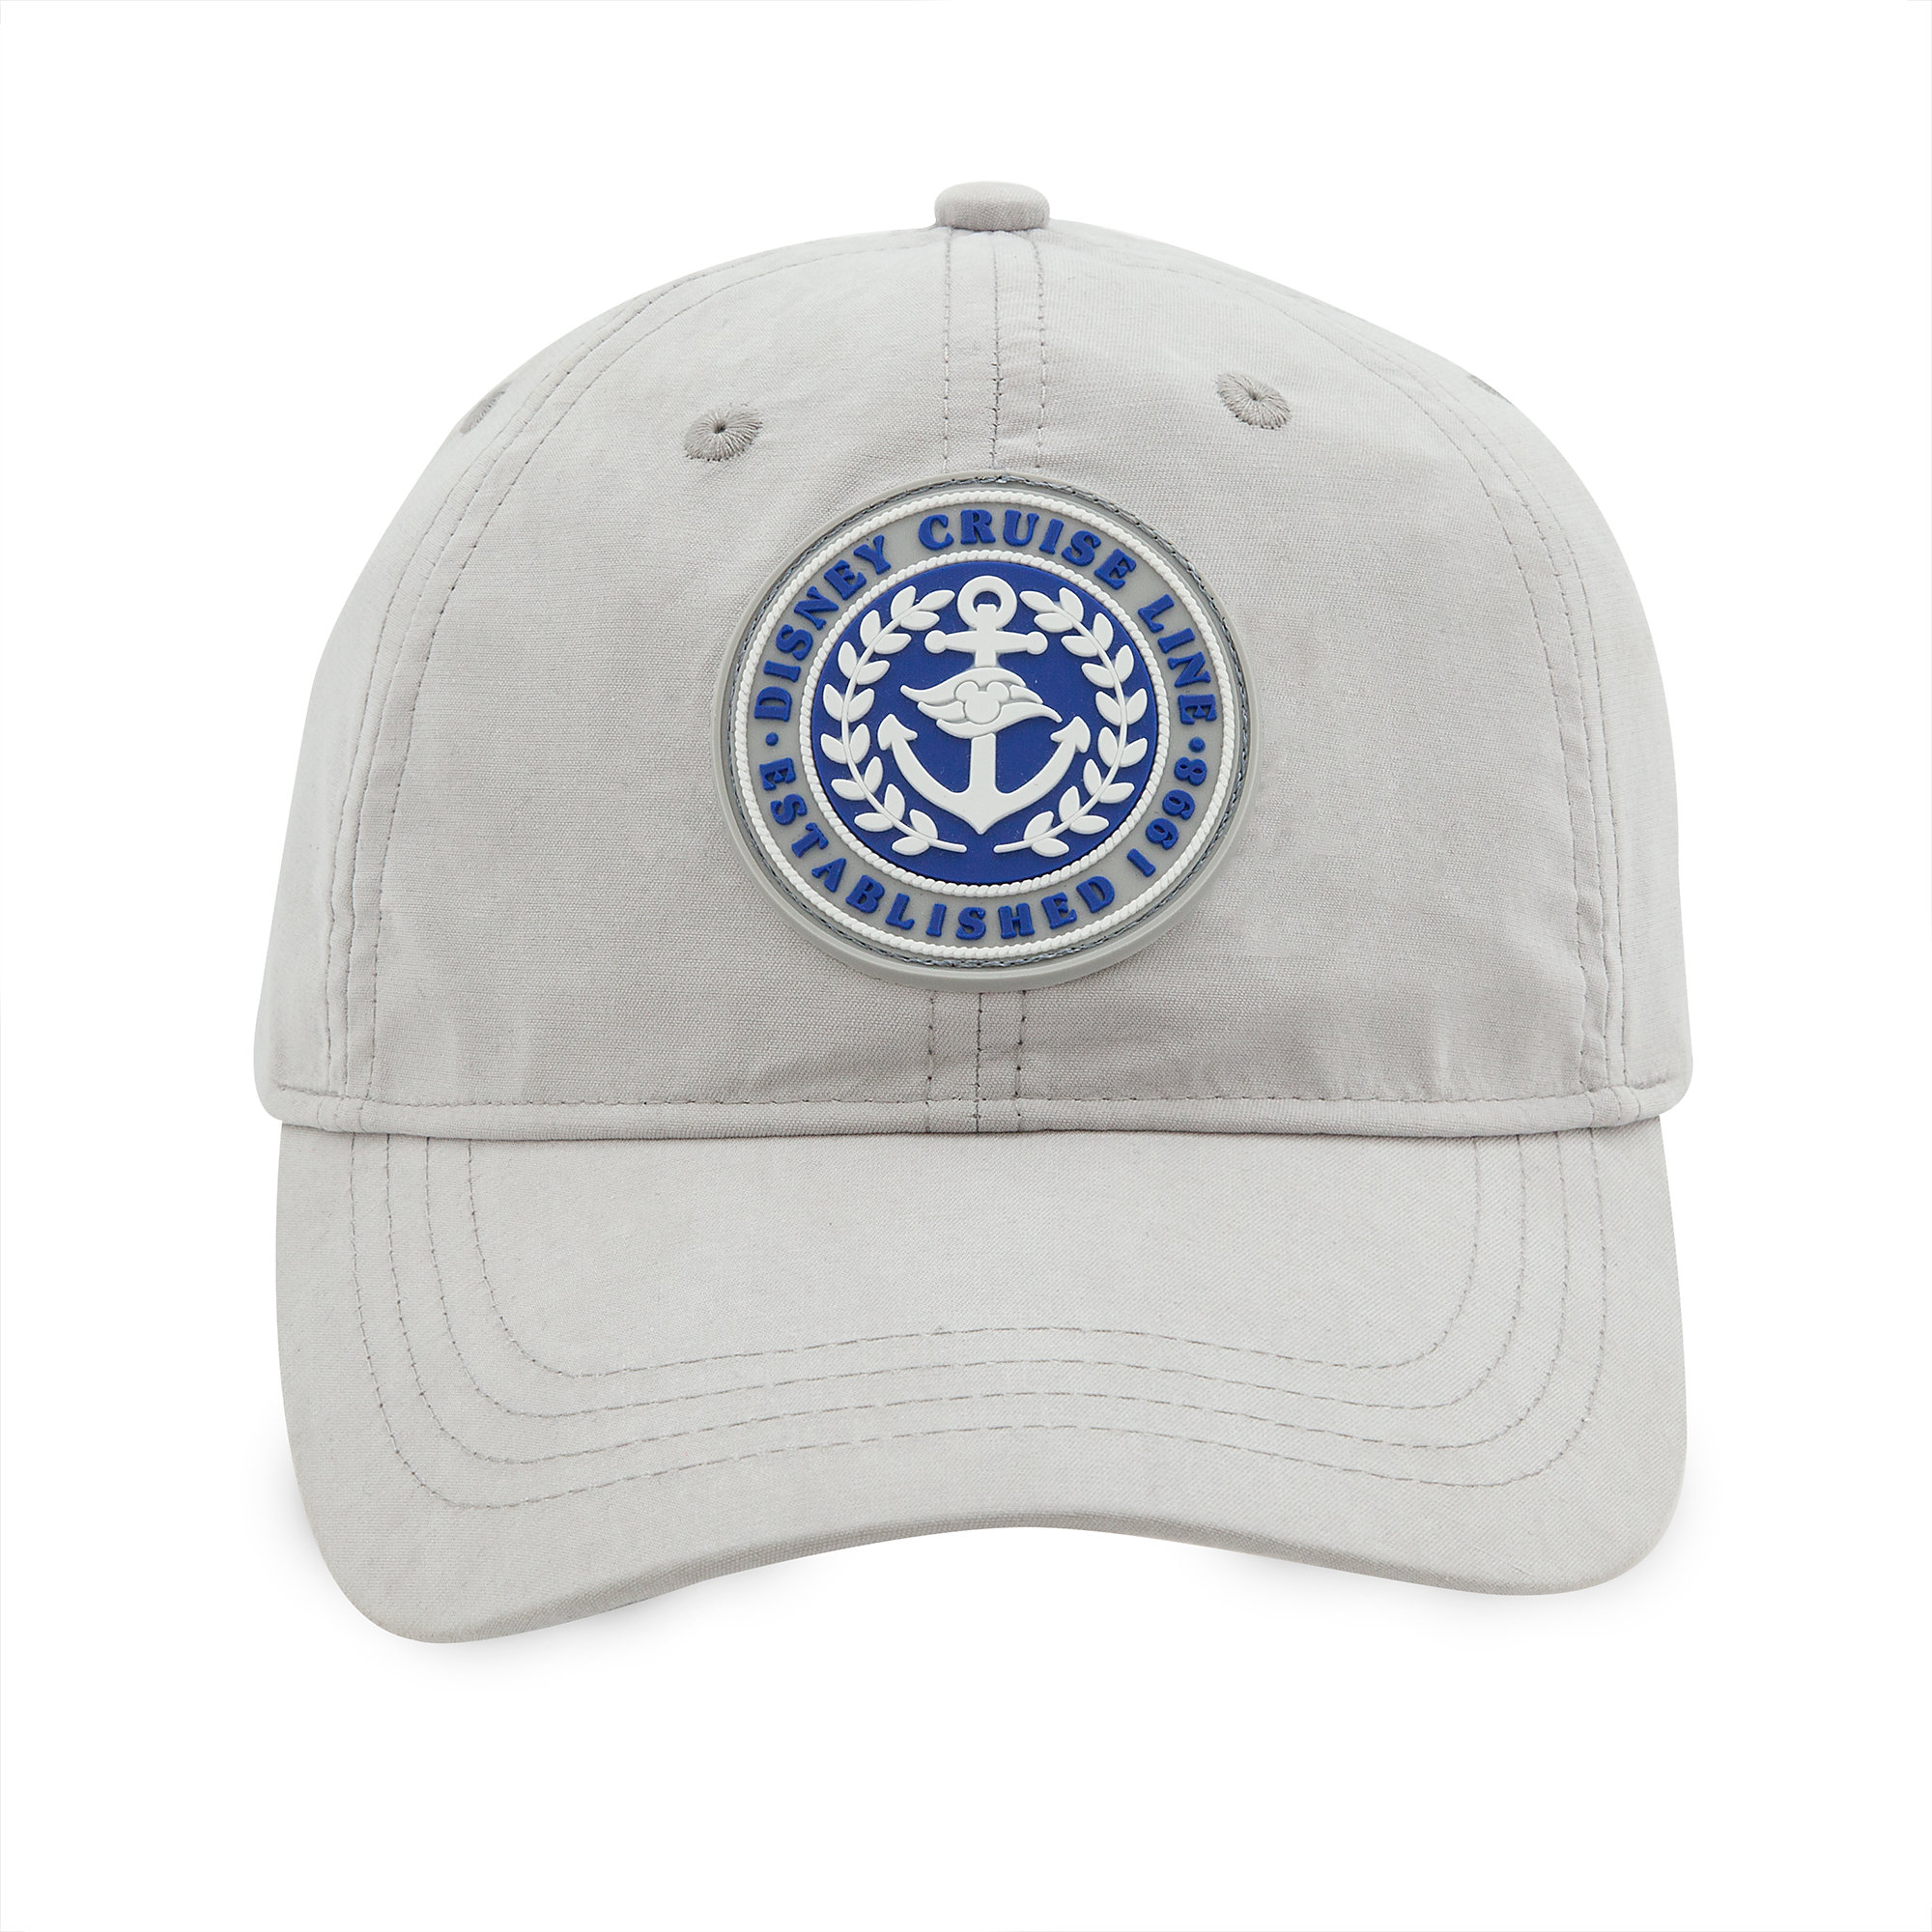 newest collection 7abca f0d1c ... clearance product image of disney cruise line baseball hat for adults 1  960c8 c7f70